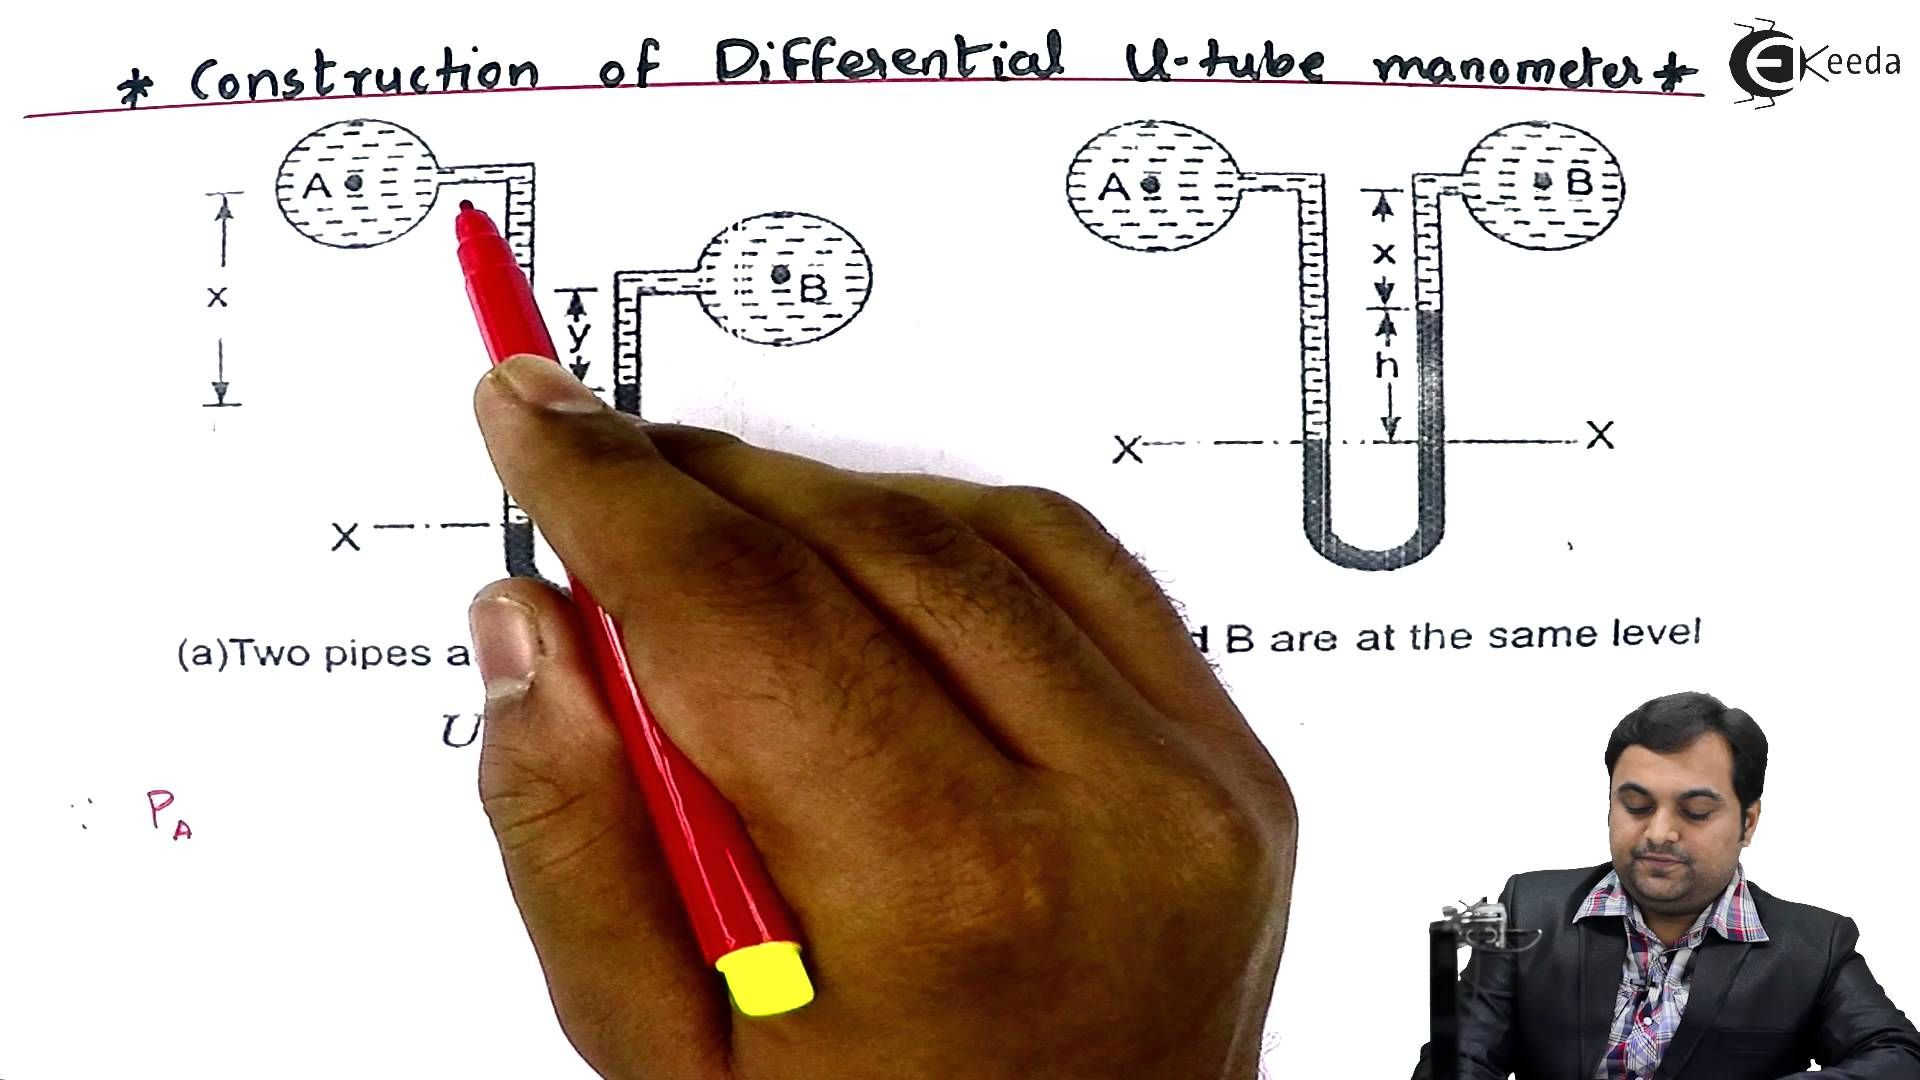 hight resolution of construction description of differential u tube manometer video tuto